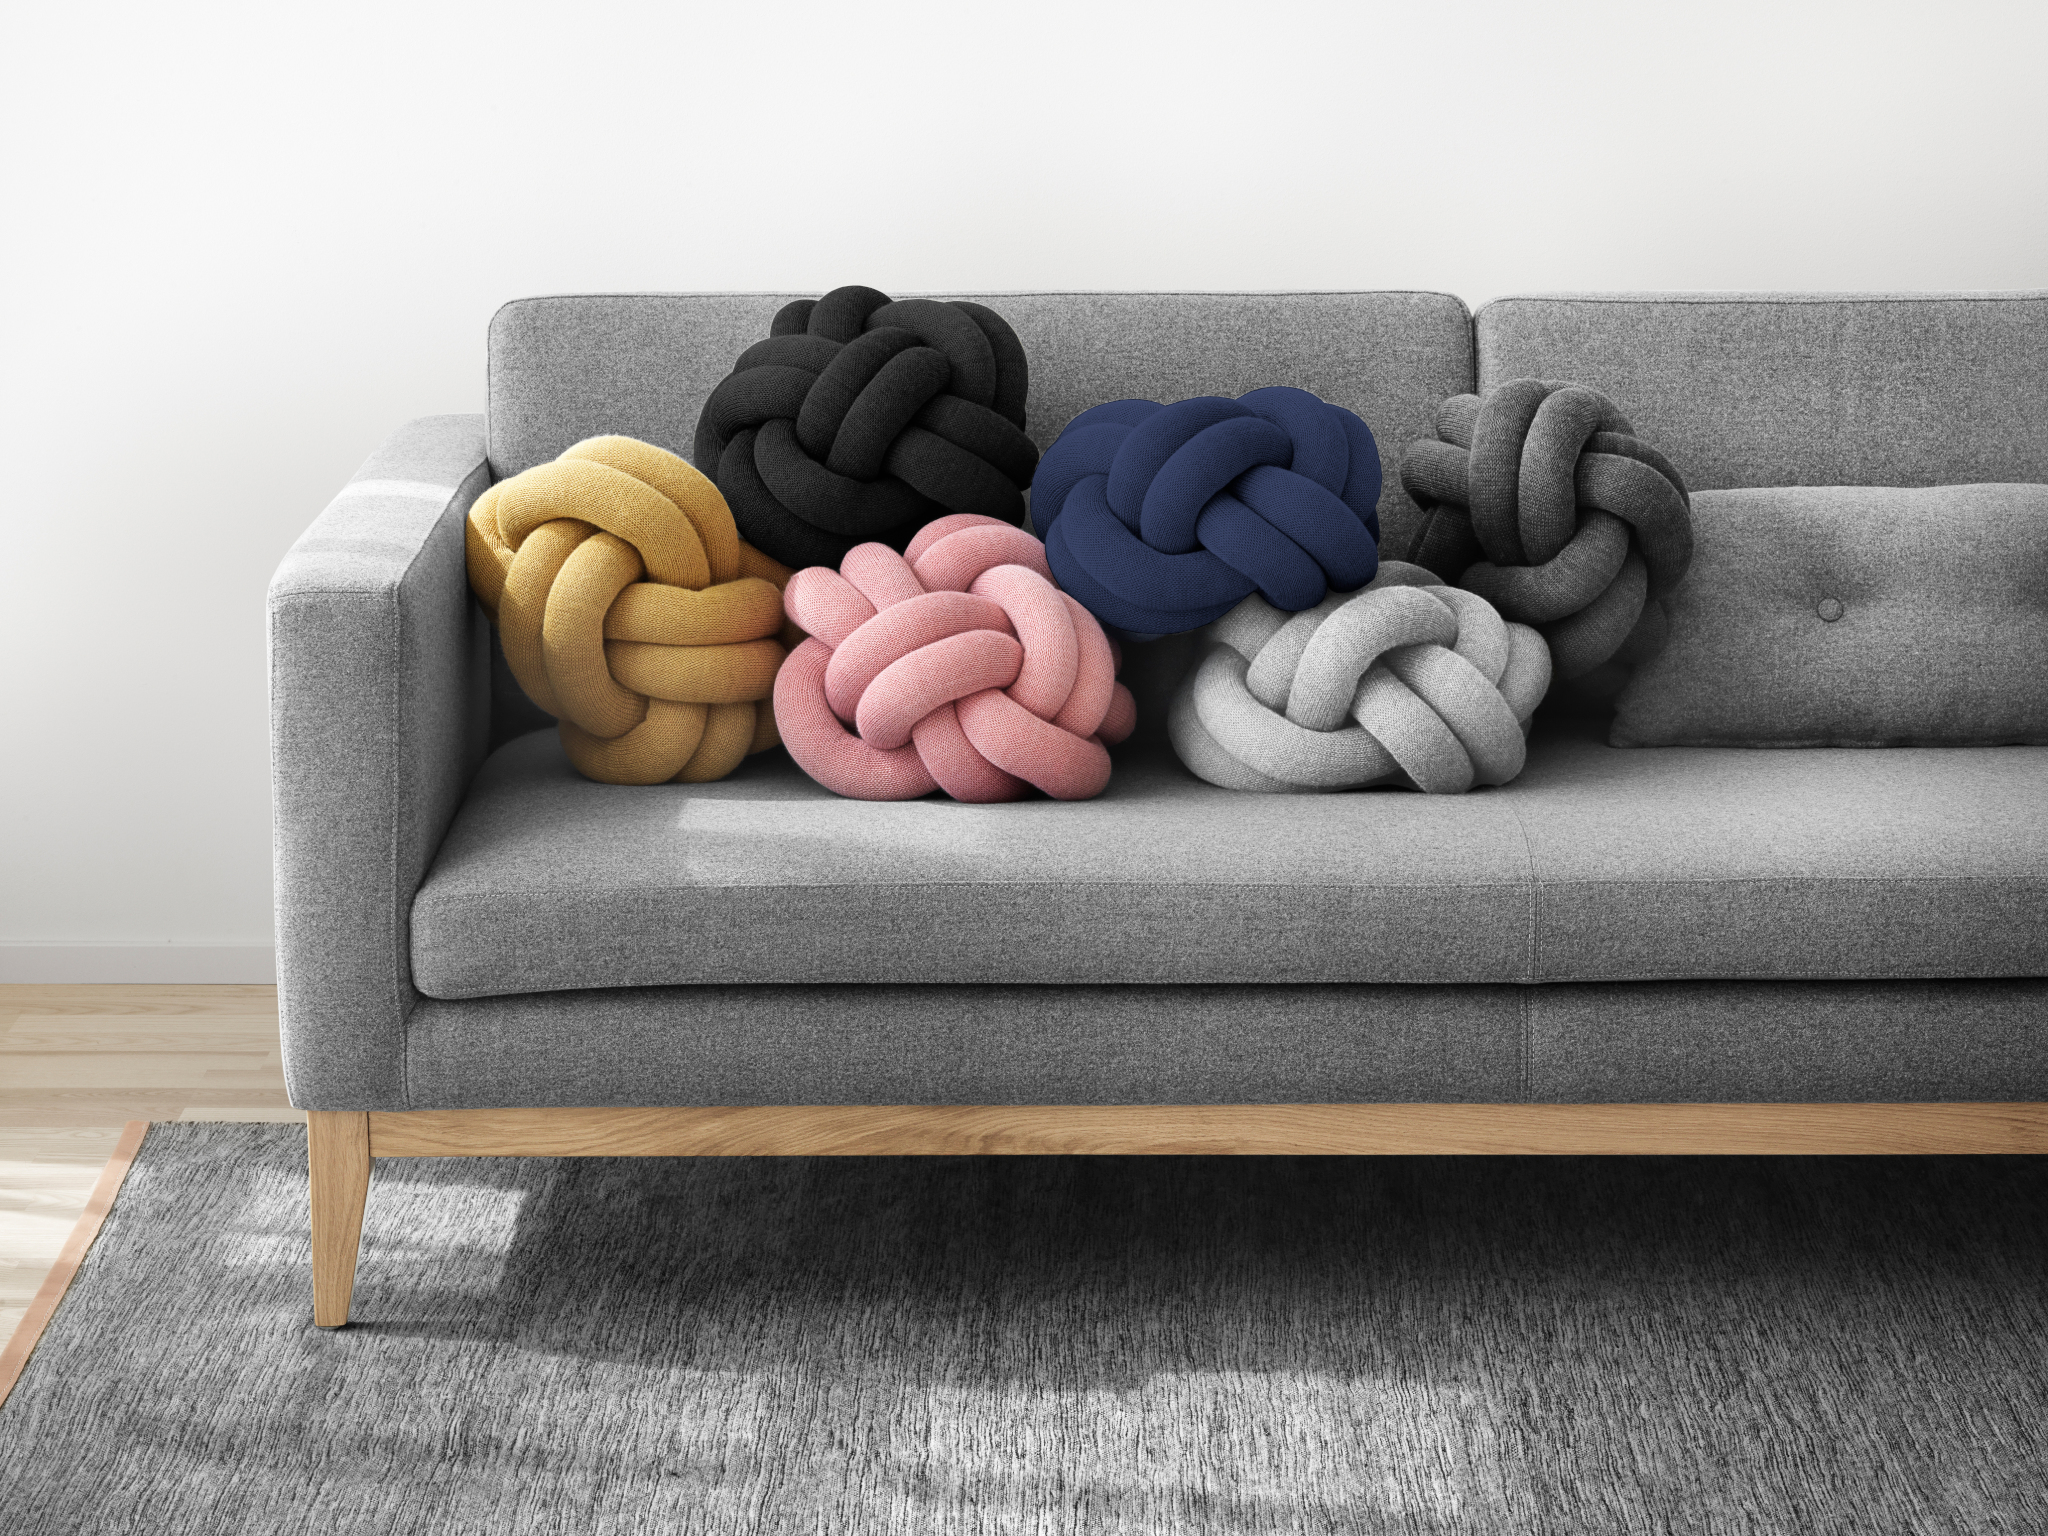 Knotenkissen knot cushion von design house stockholm